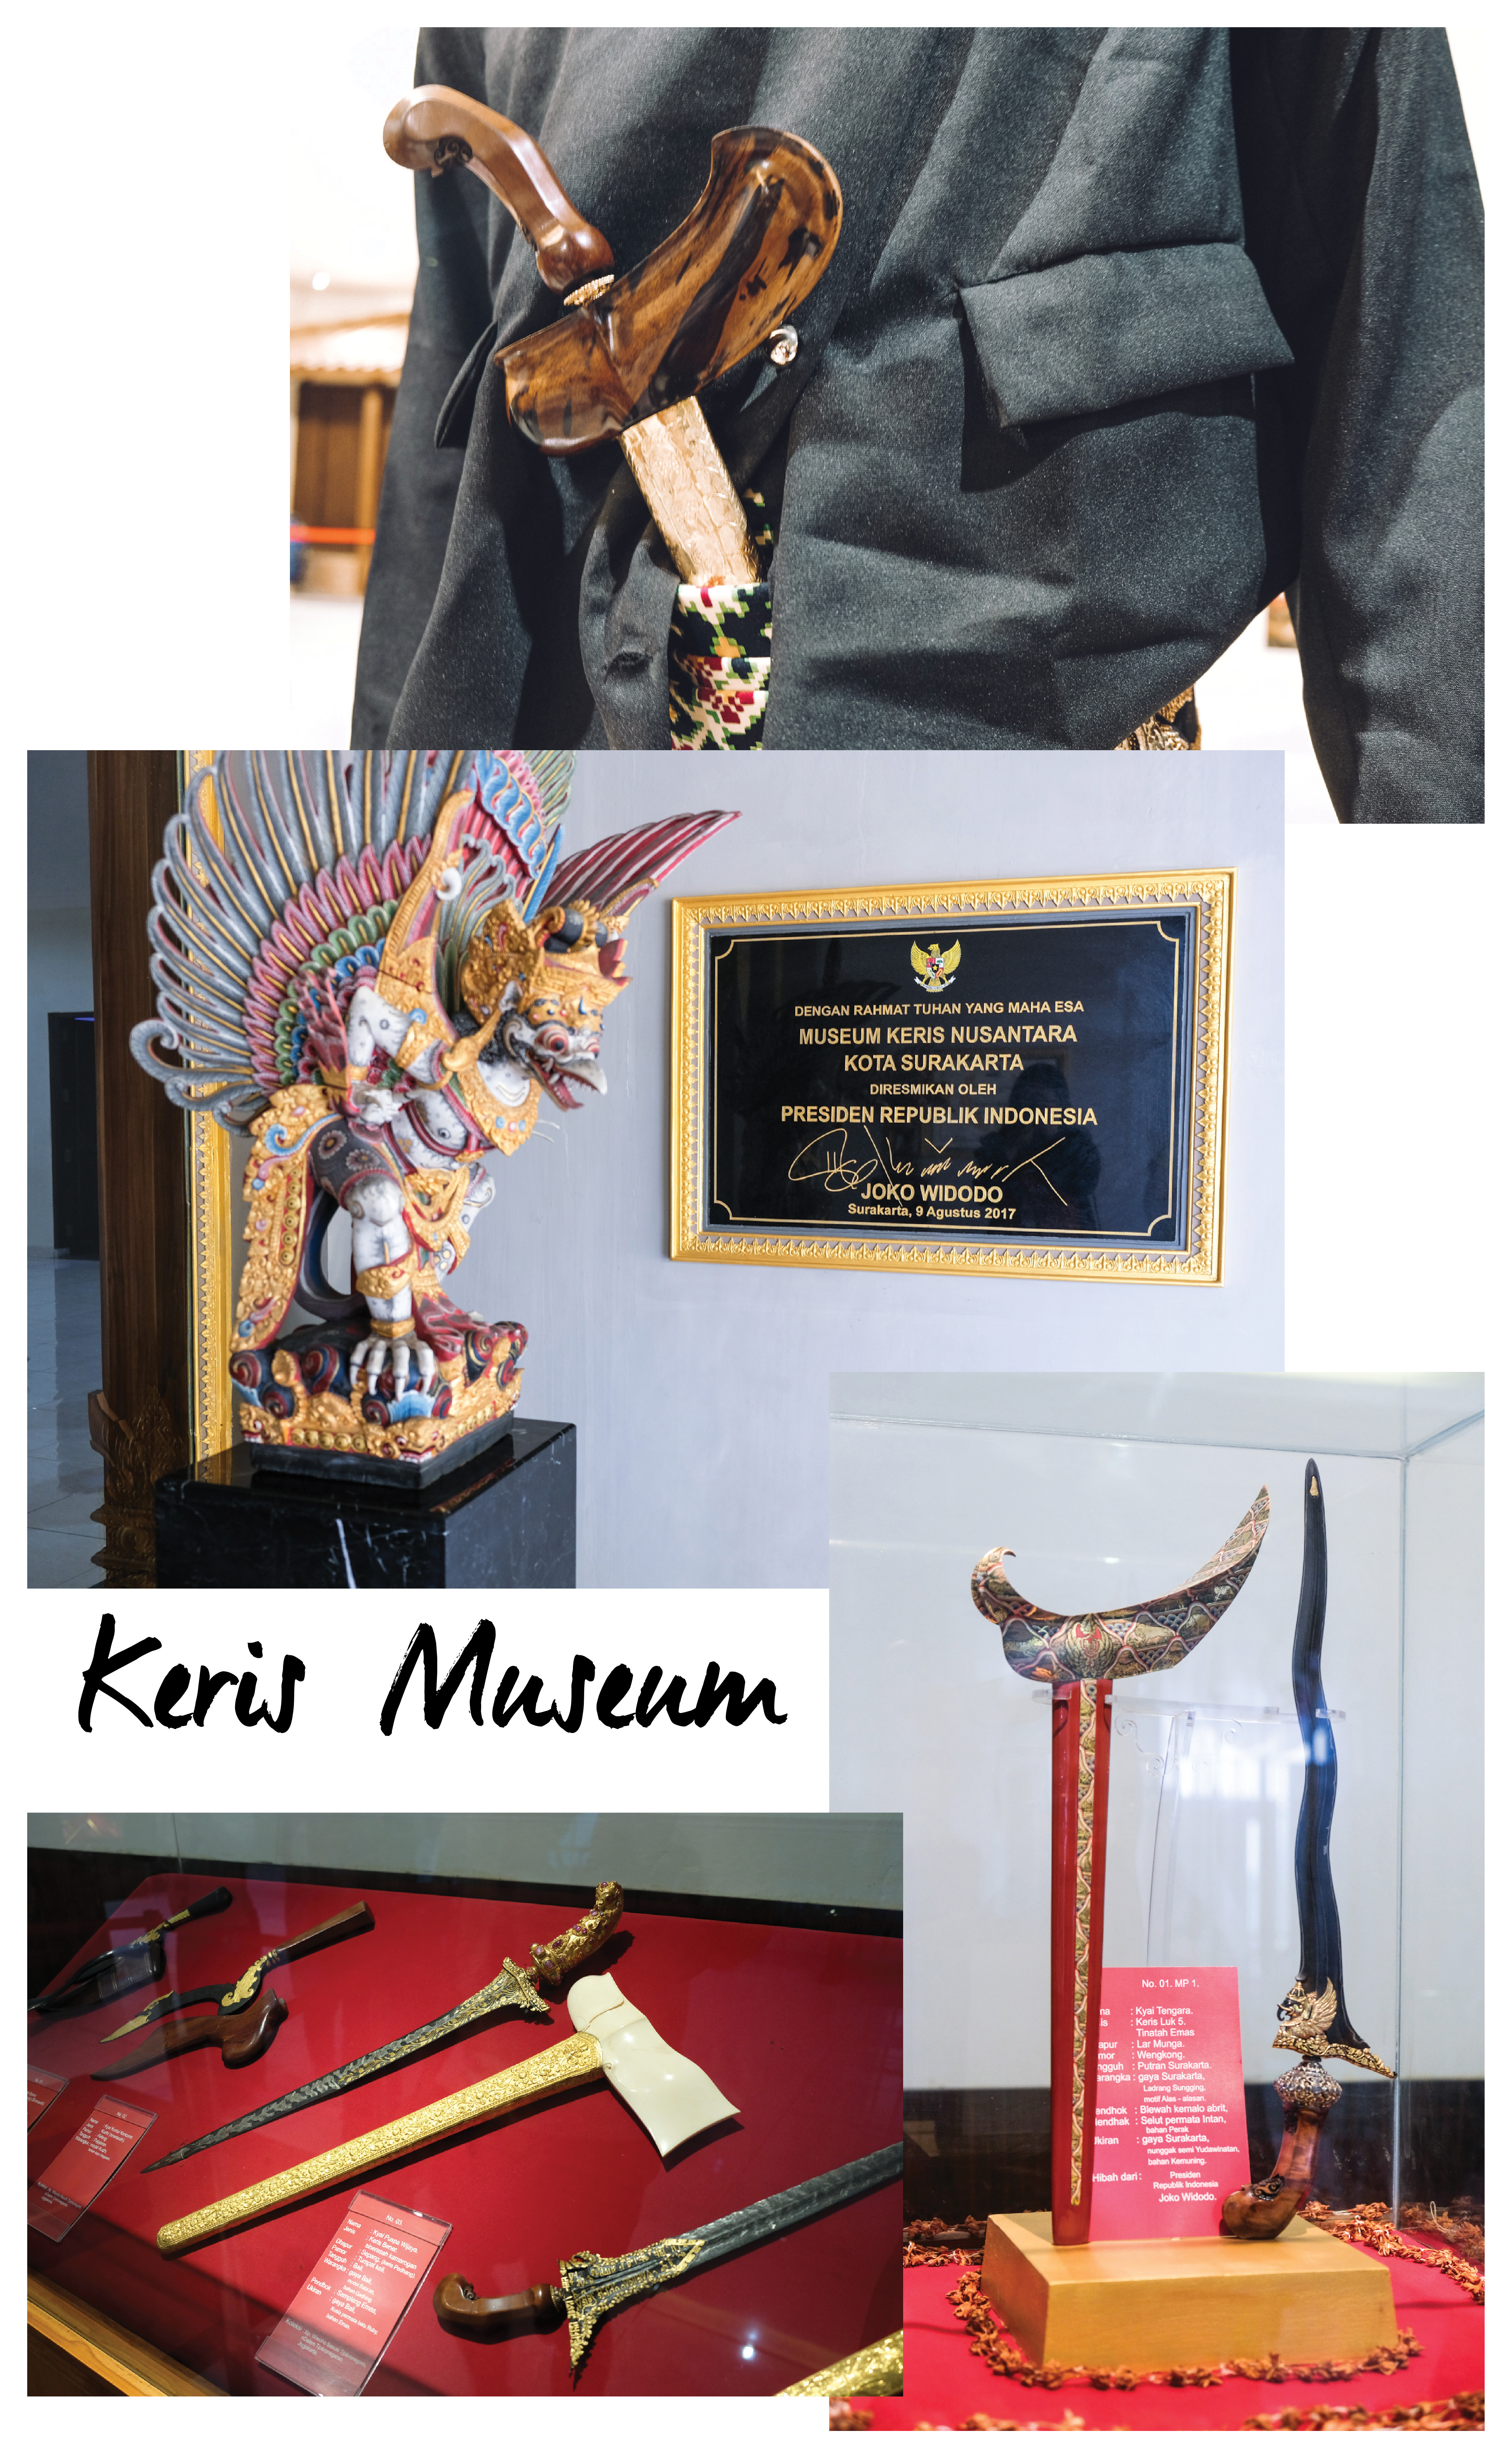 Find a keris when you travel in indonesia